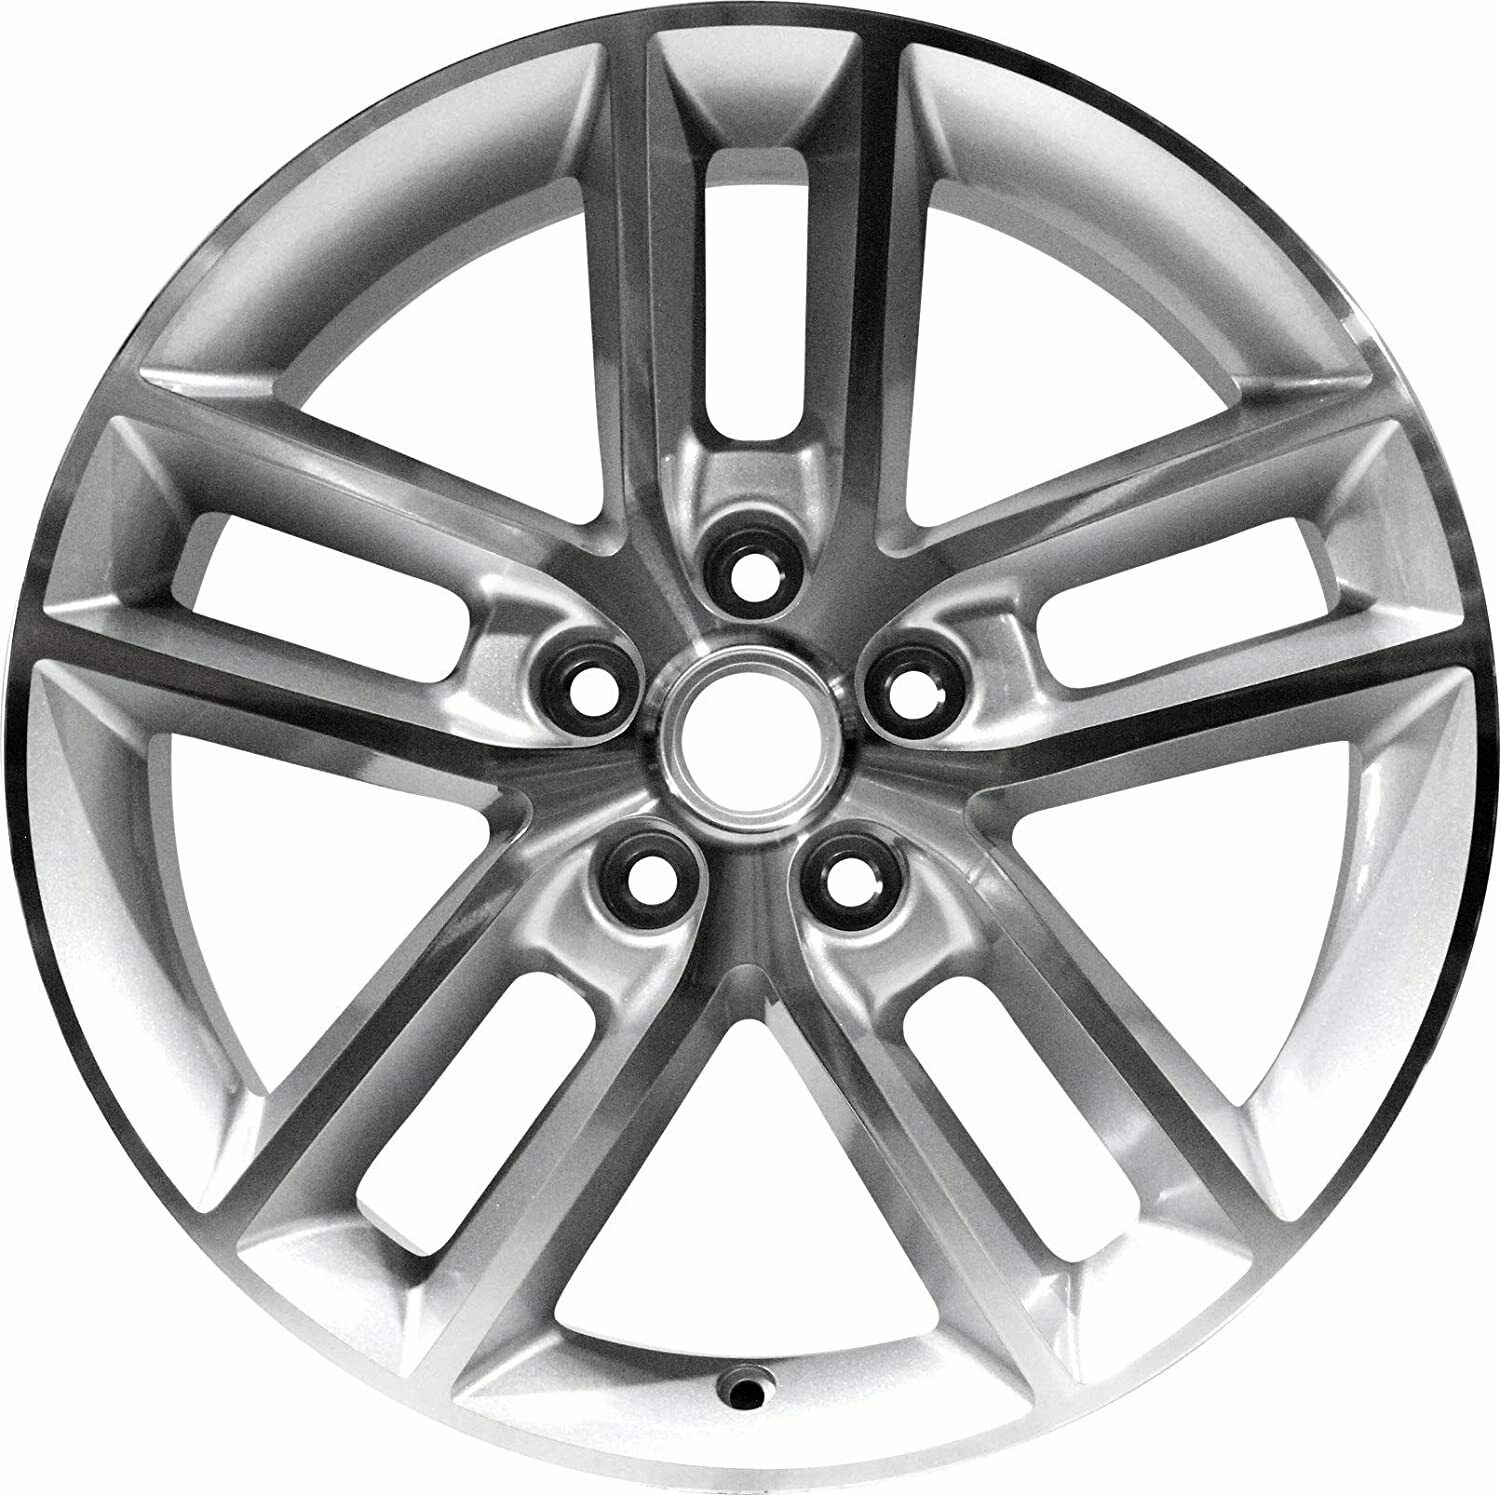 New Aluminum Wheel Rim For 2008-2016 Chevy Impala 18 Inch